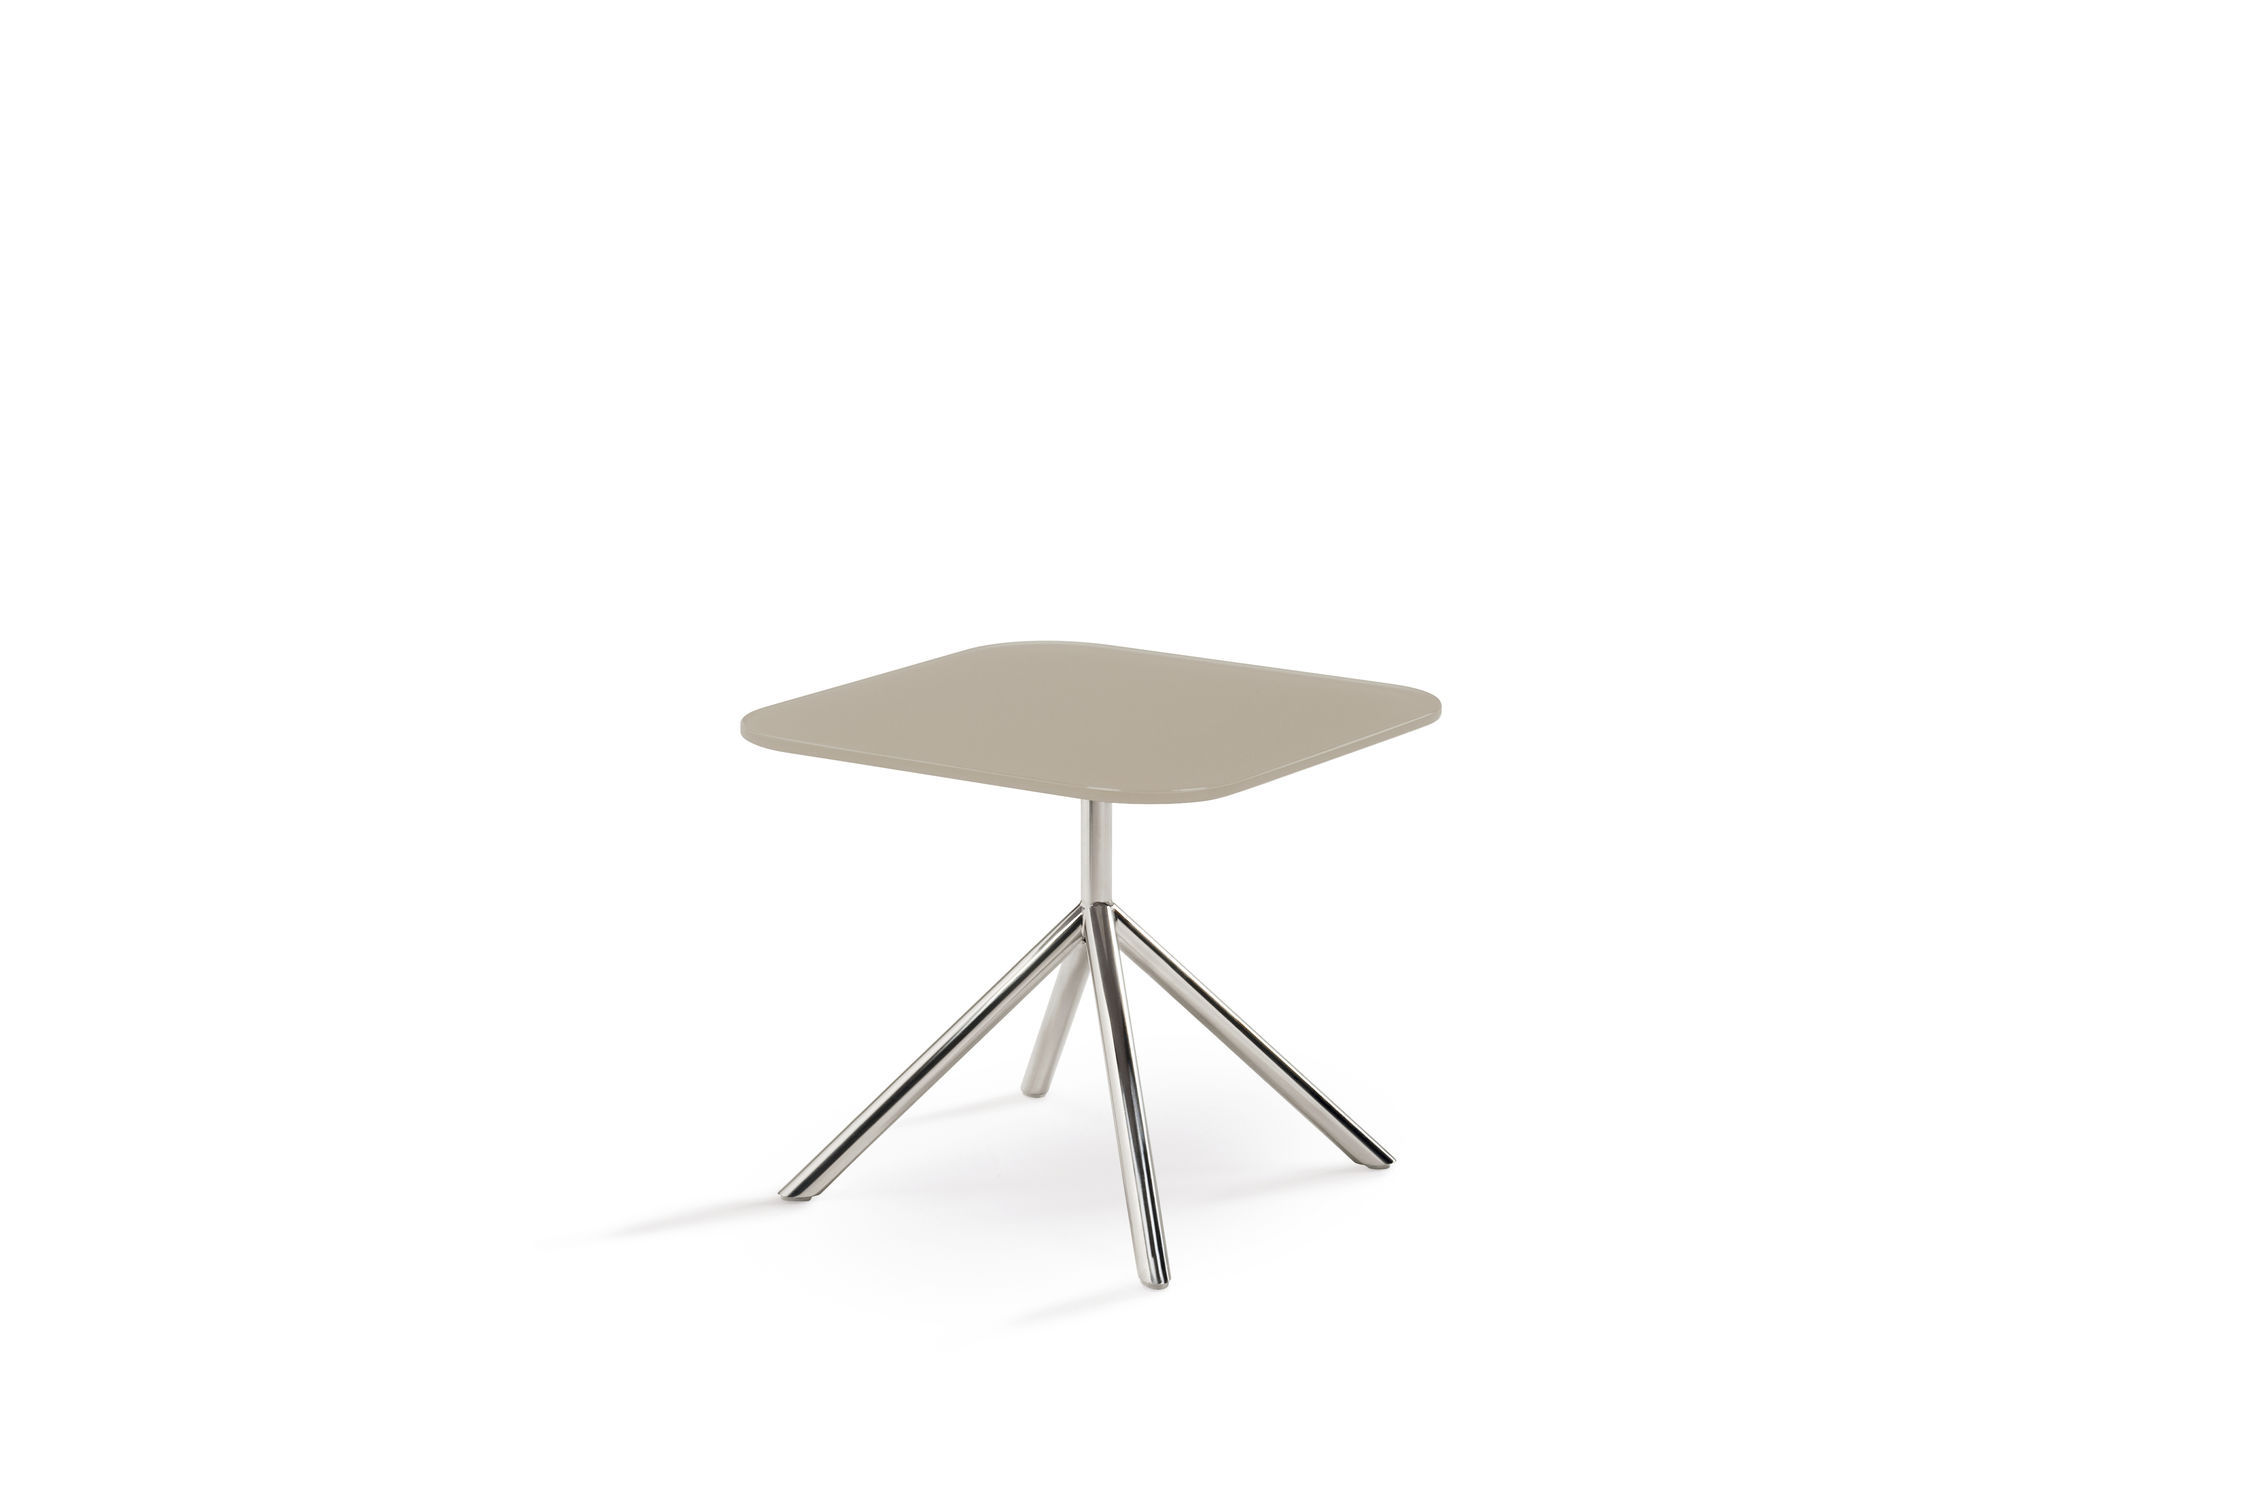 Sidetable Jan Des Bouvrie.Contemporary Side Table Glass Stainless Steel Round